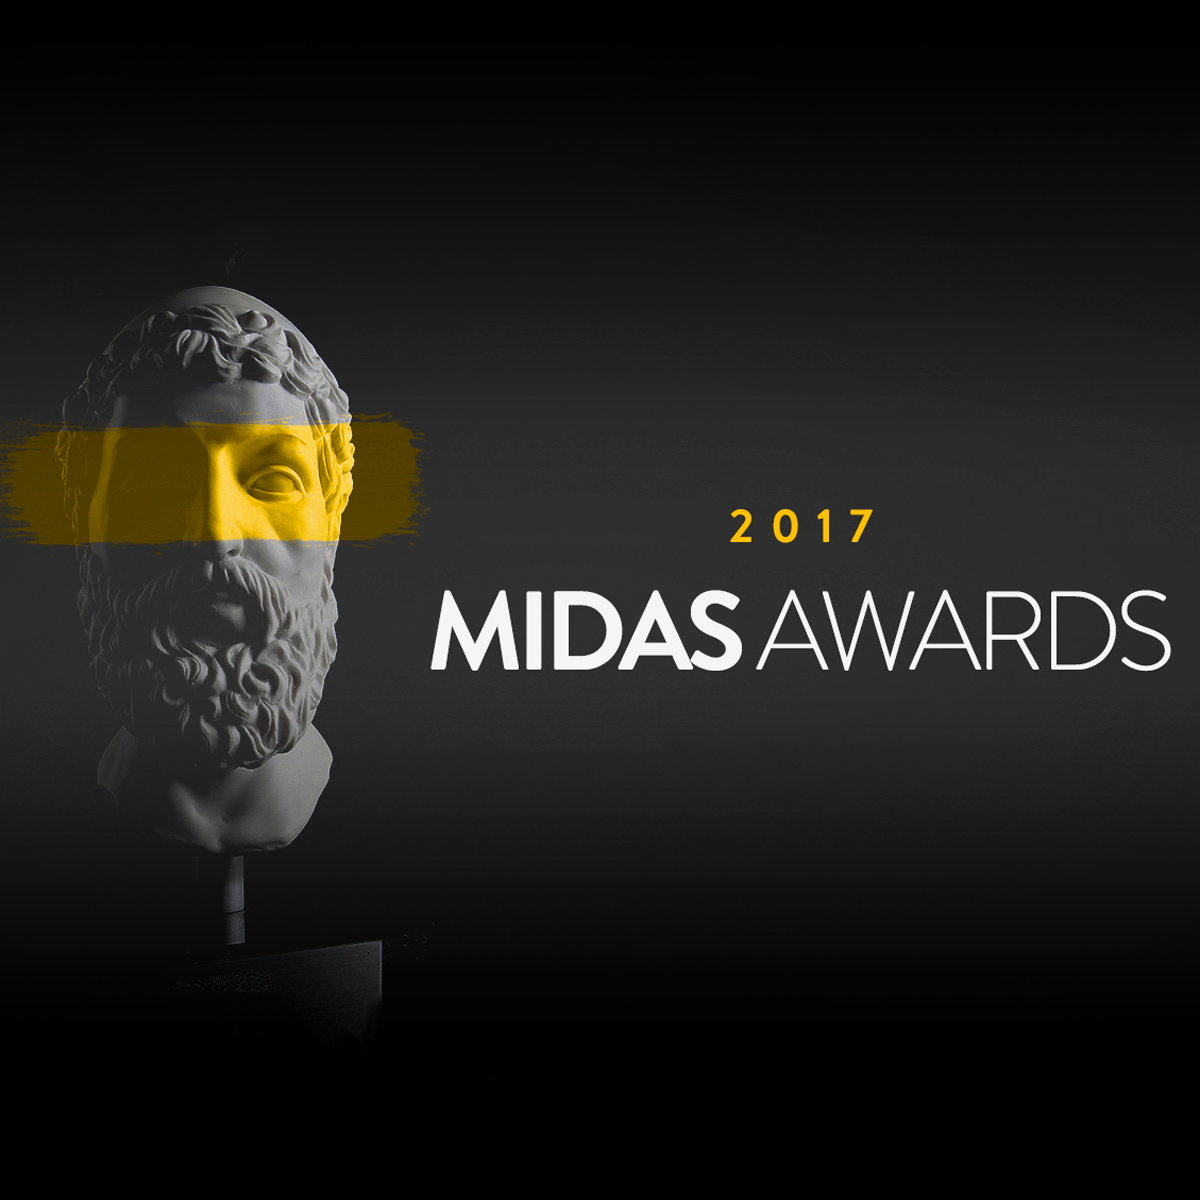 2017 Midas Awards Are Now Open for Entries